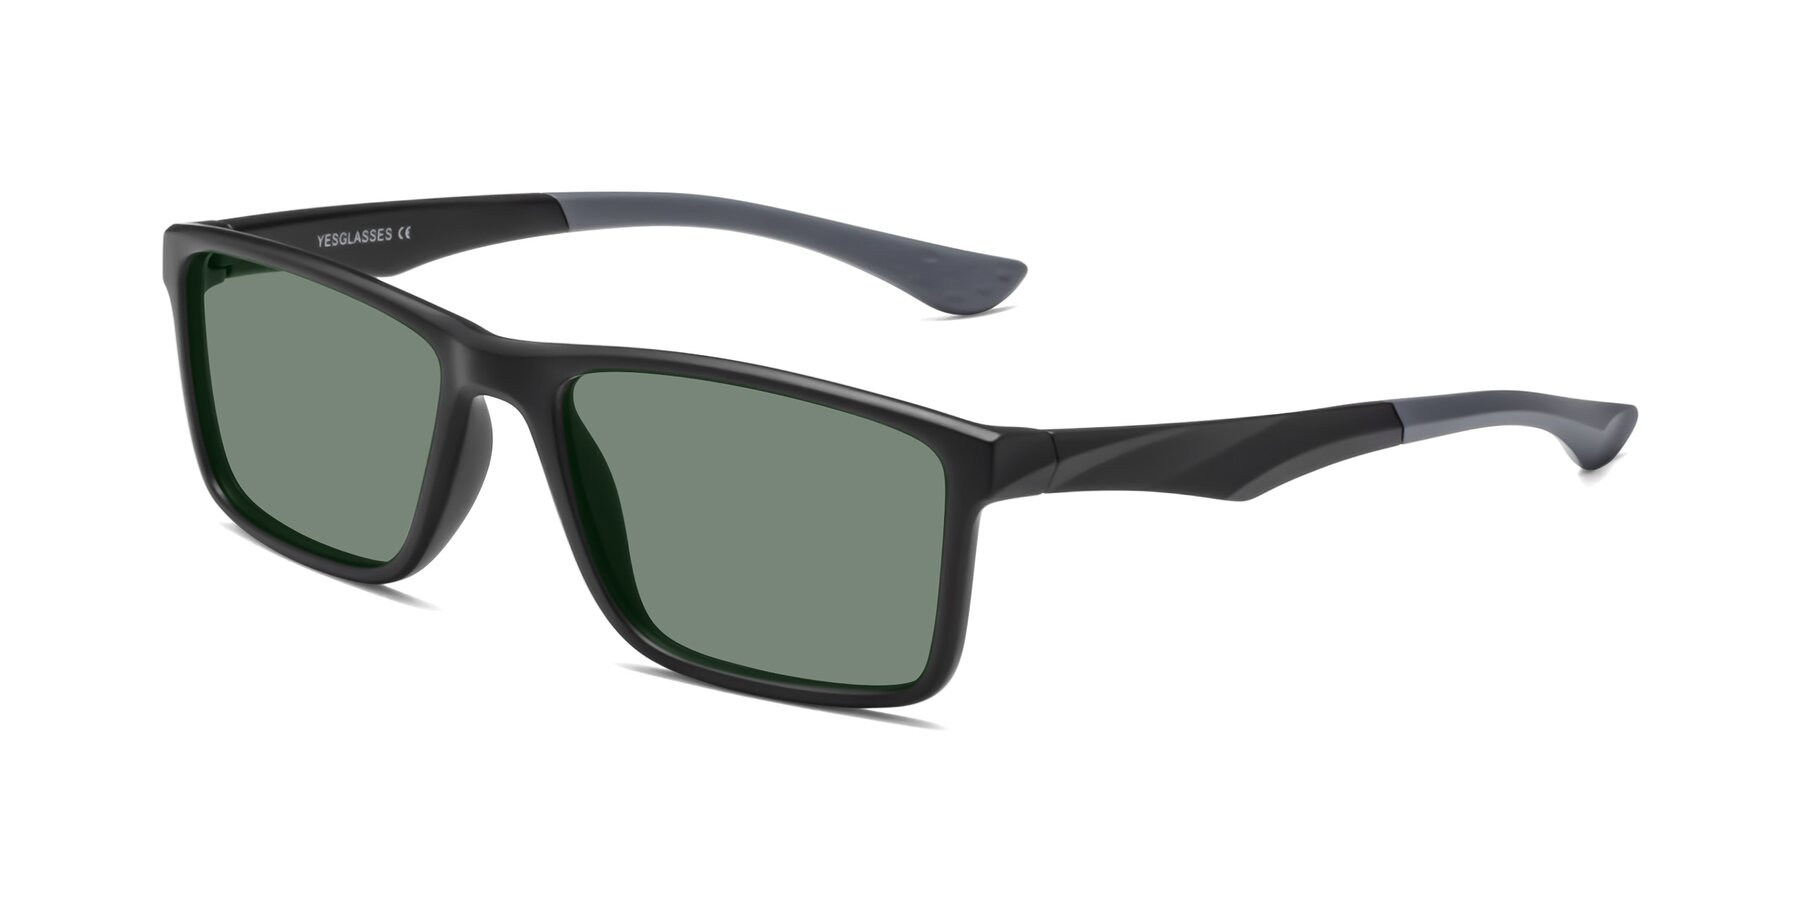 Angle of Engineer in Matte Black-Gray with Medium Green Tinted Lenses